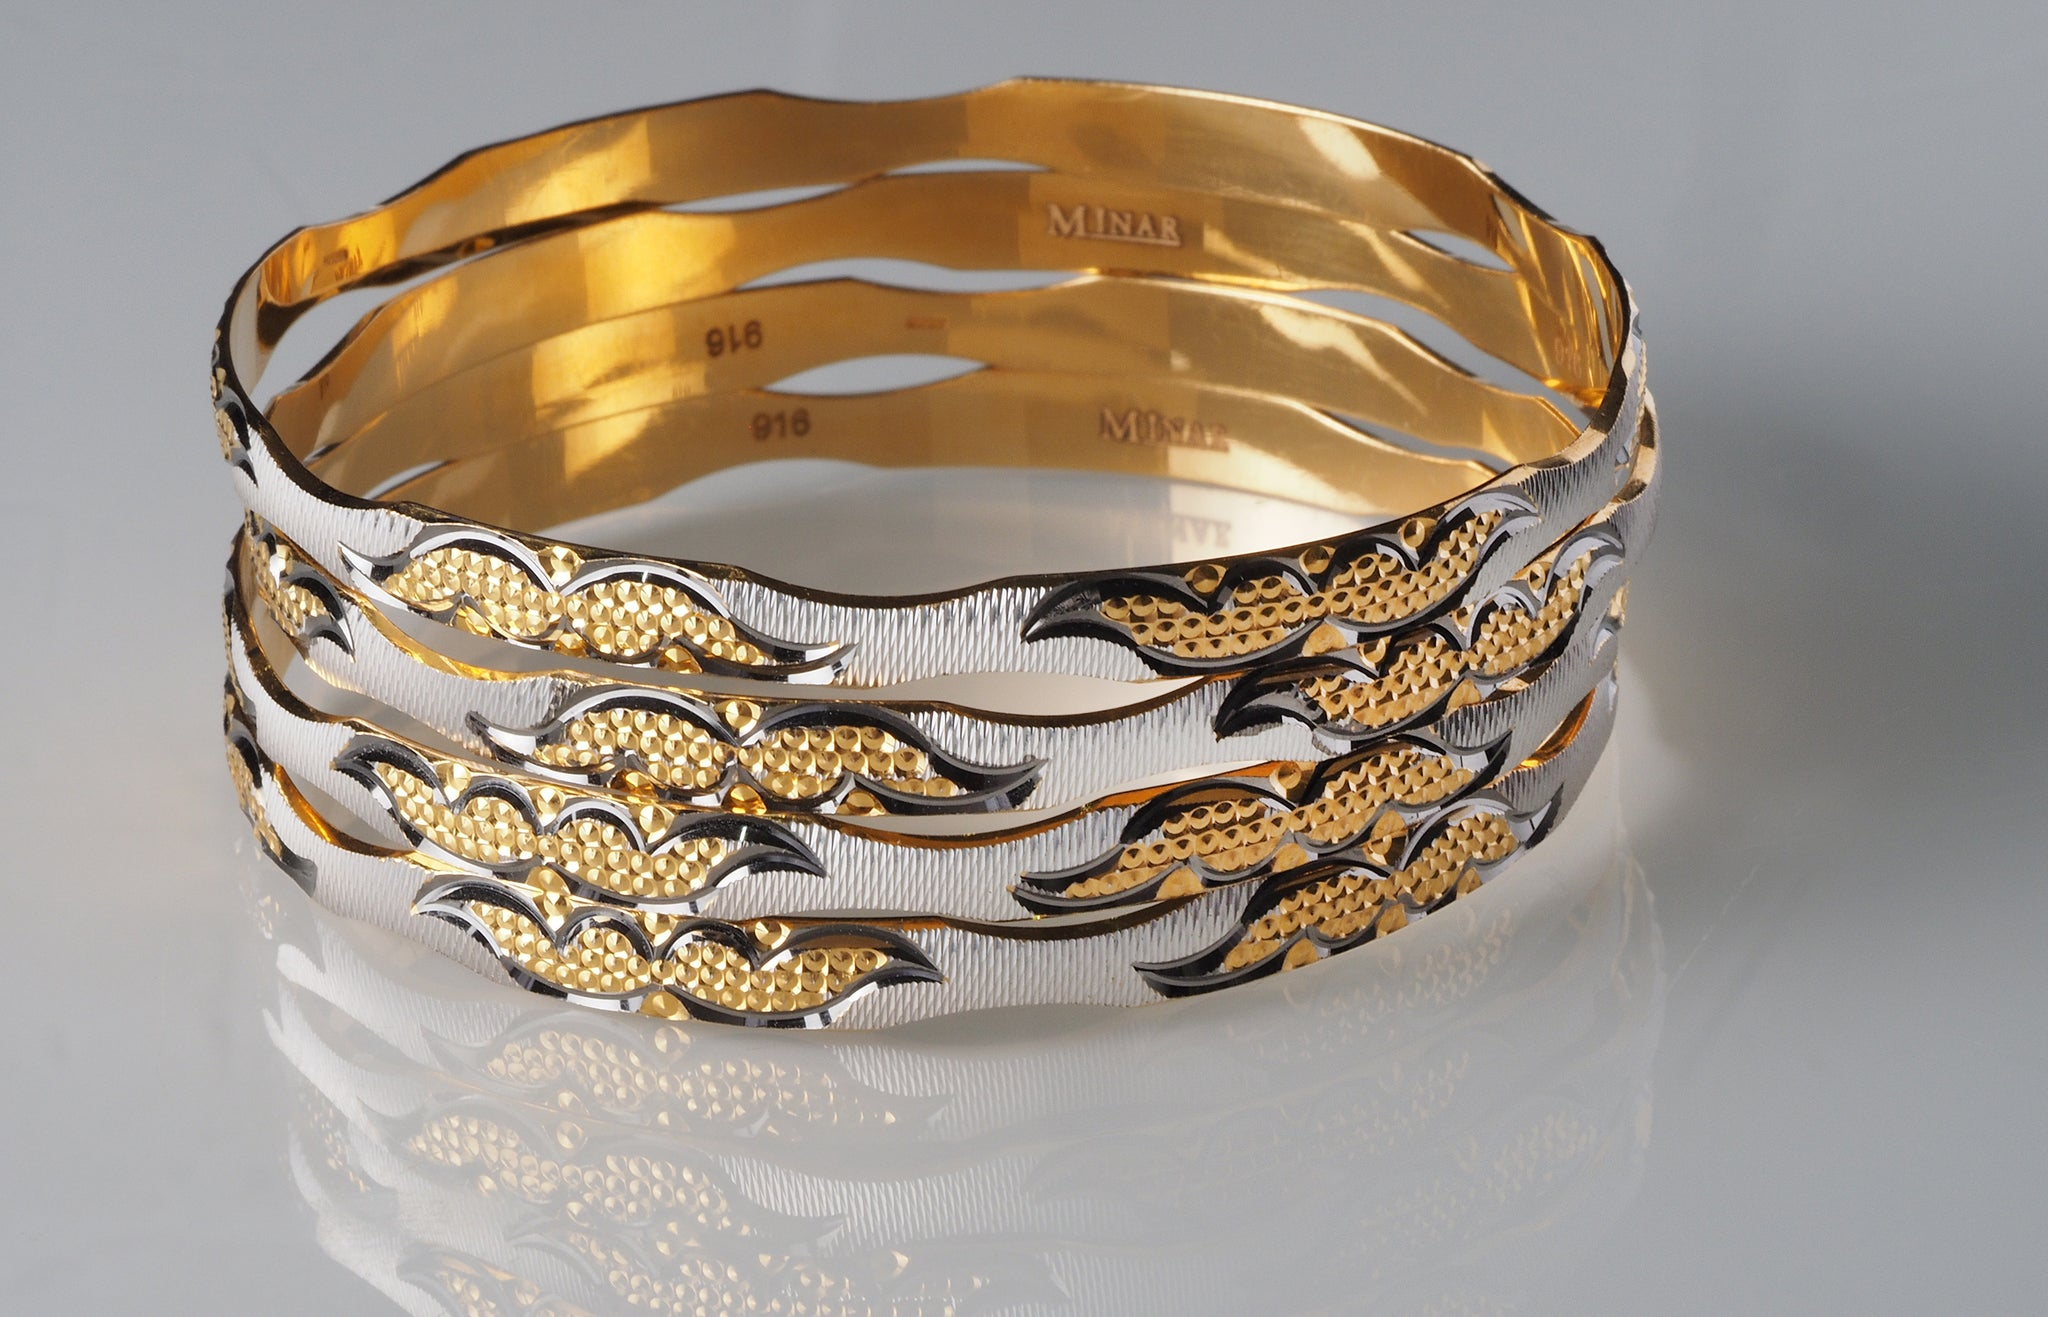 store battersea bangle metal bangles